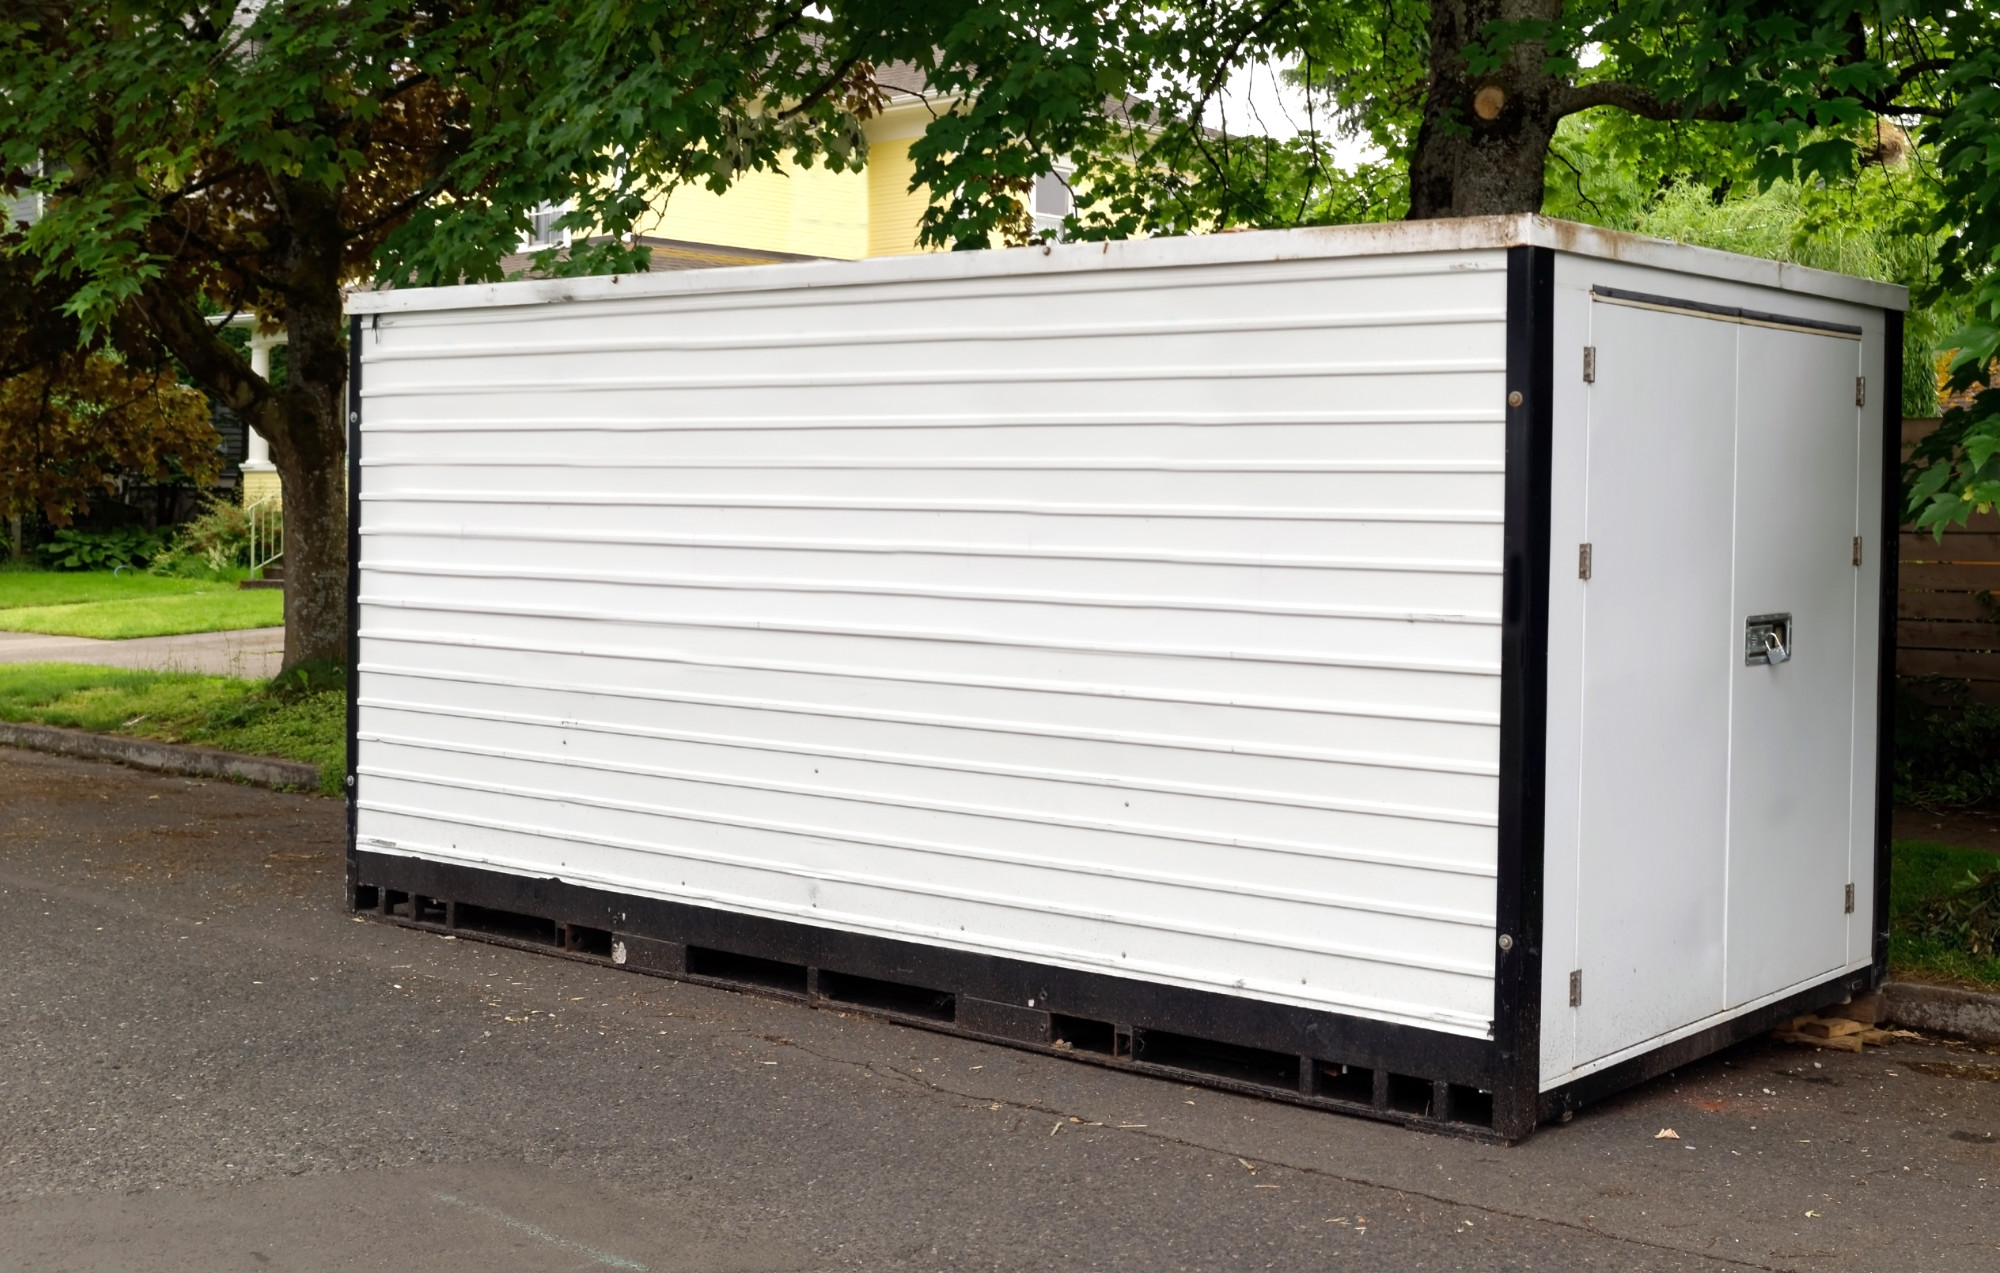 5 Things That You Should Know Before Renting a Shipping Container